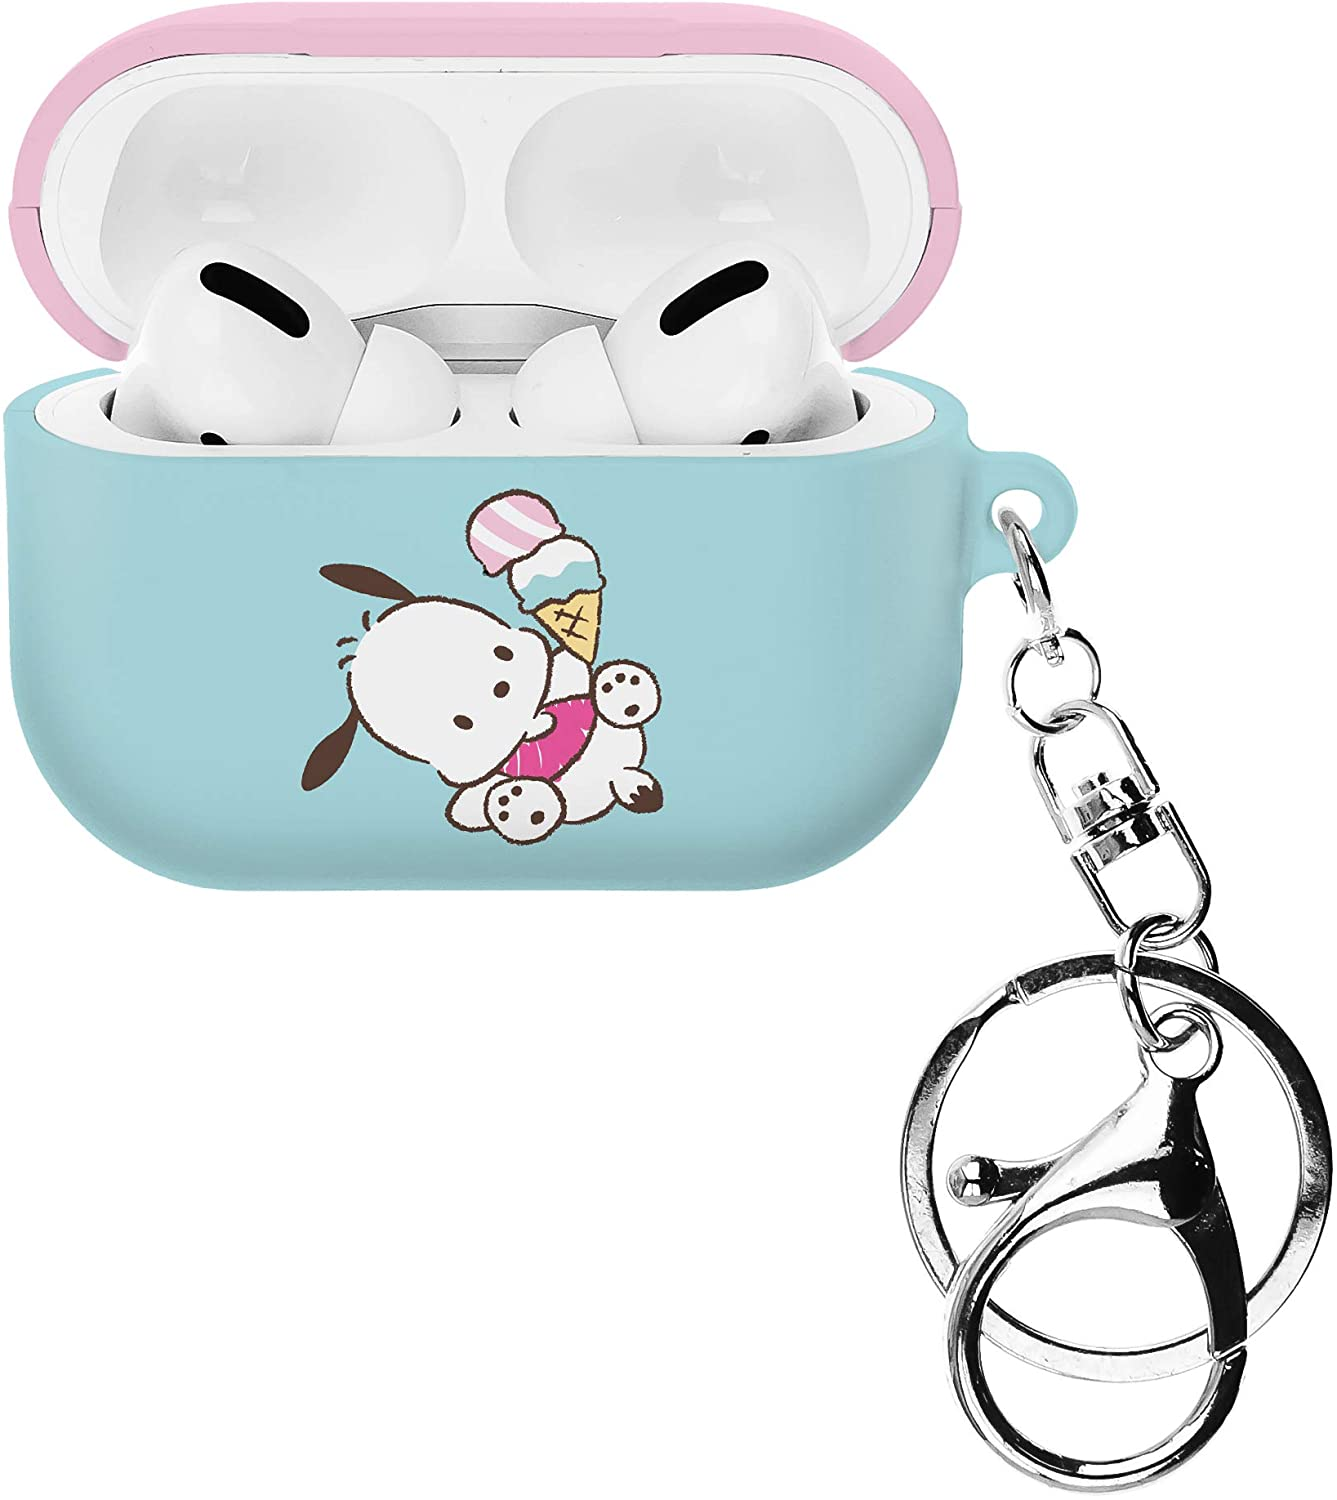 Sanrio AirPods Pro Case with Key Ring Keychain Key Holder Hard PC Shell Strap Hole Cover Compatible with Apple Airpods Pro - Pochacco Tilt